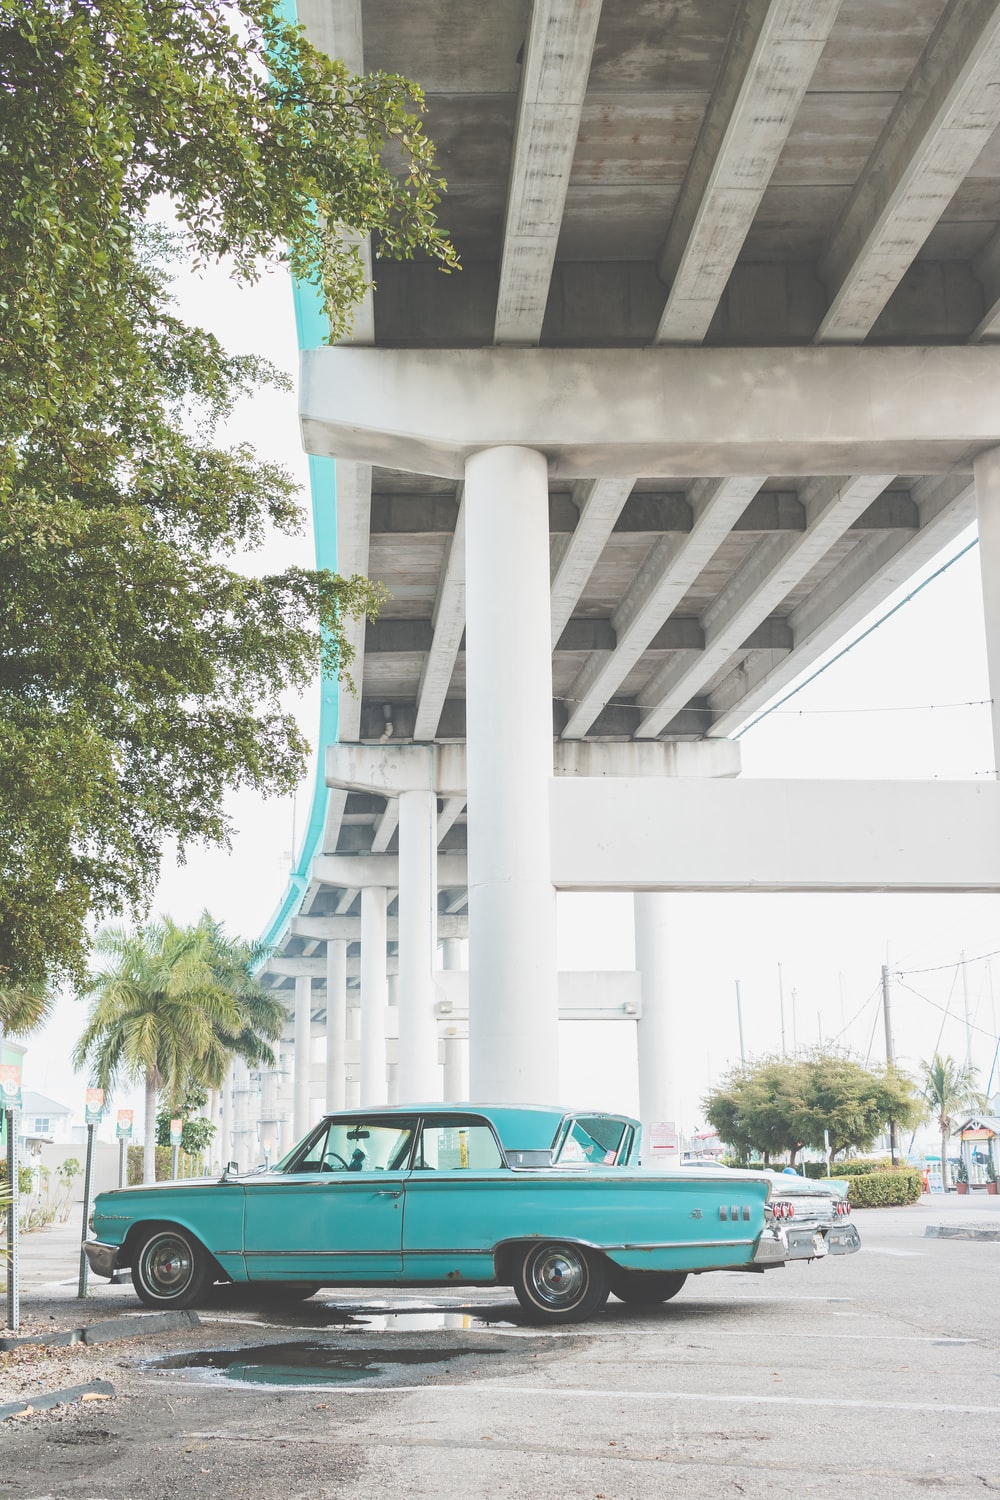 classic teal Chevrolet Impala hardtop coupe parked near tree under flyover during daytime